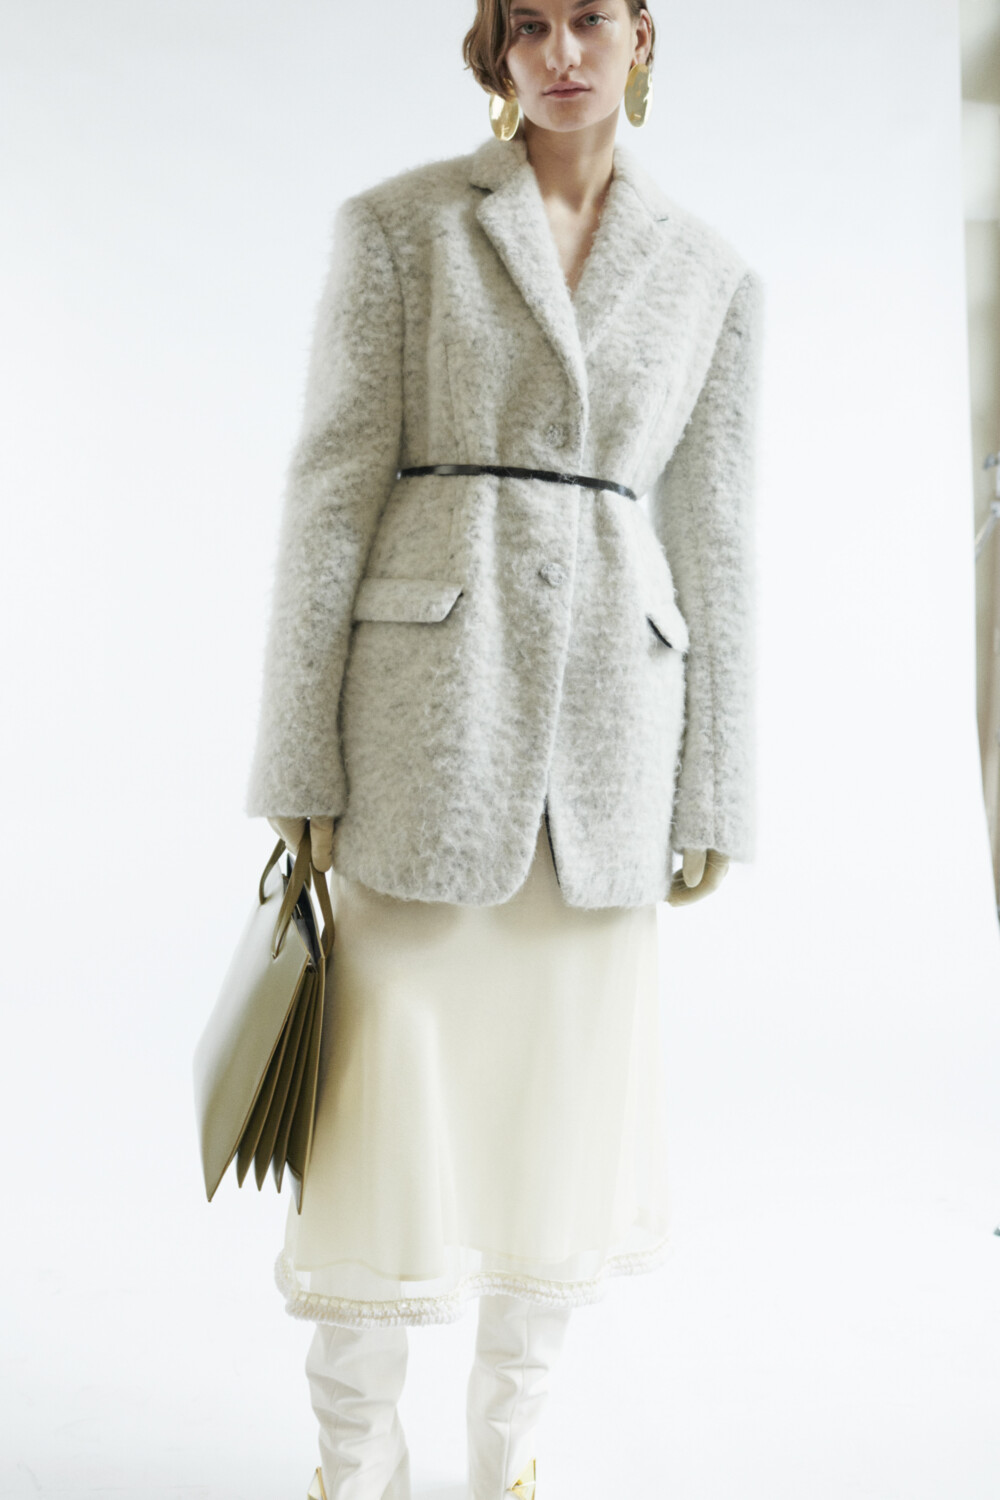 Jil Sander Women Fall Winter 2021 2022 Paris